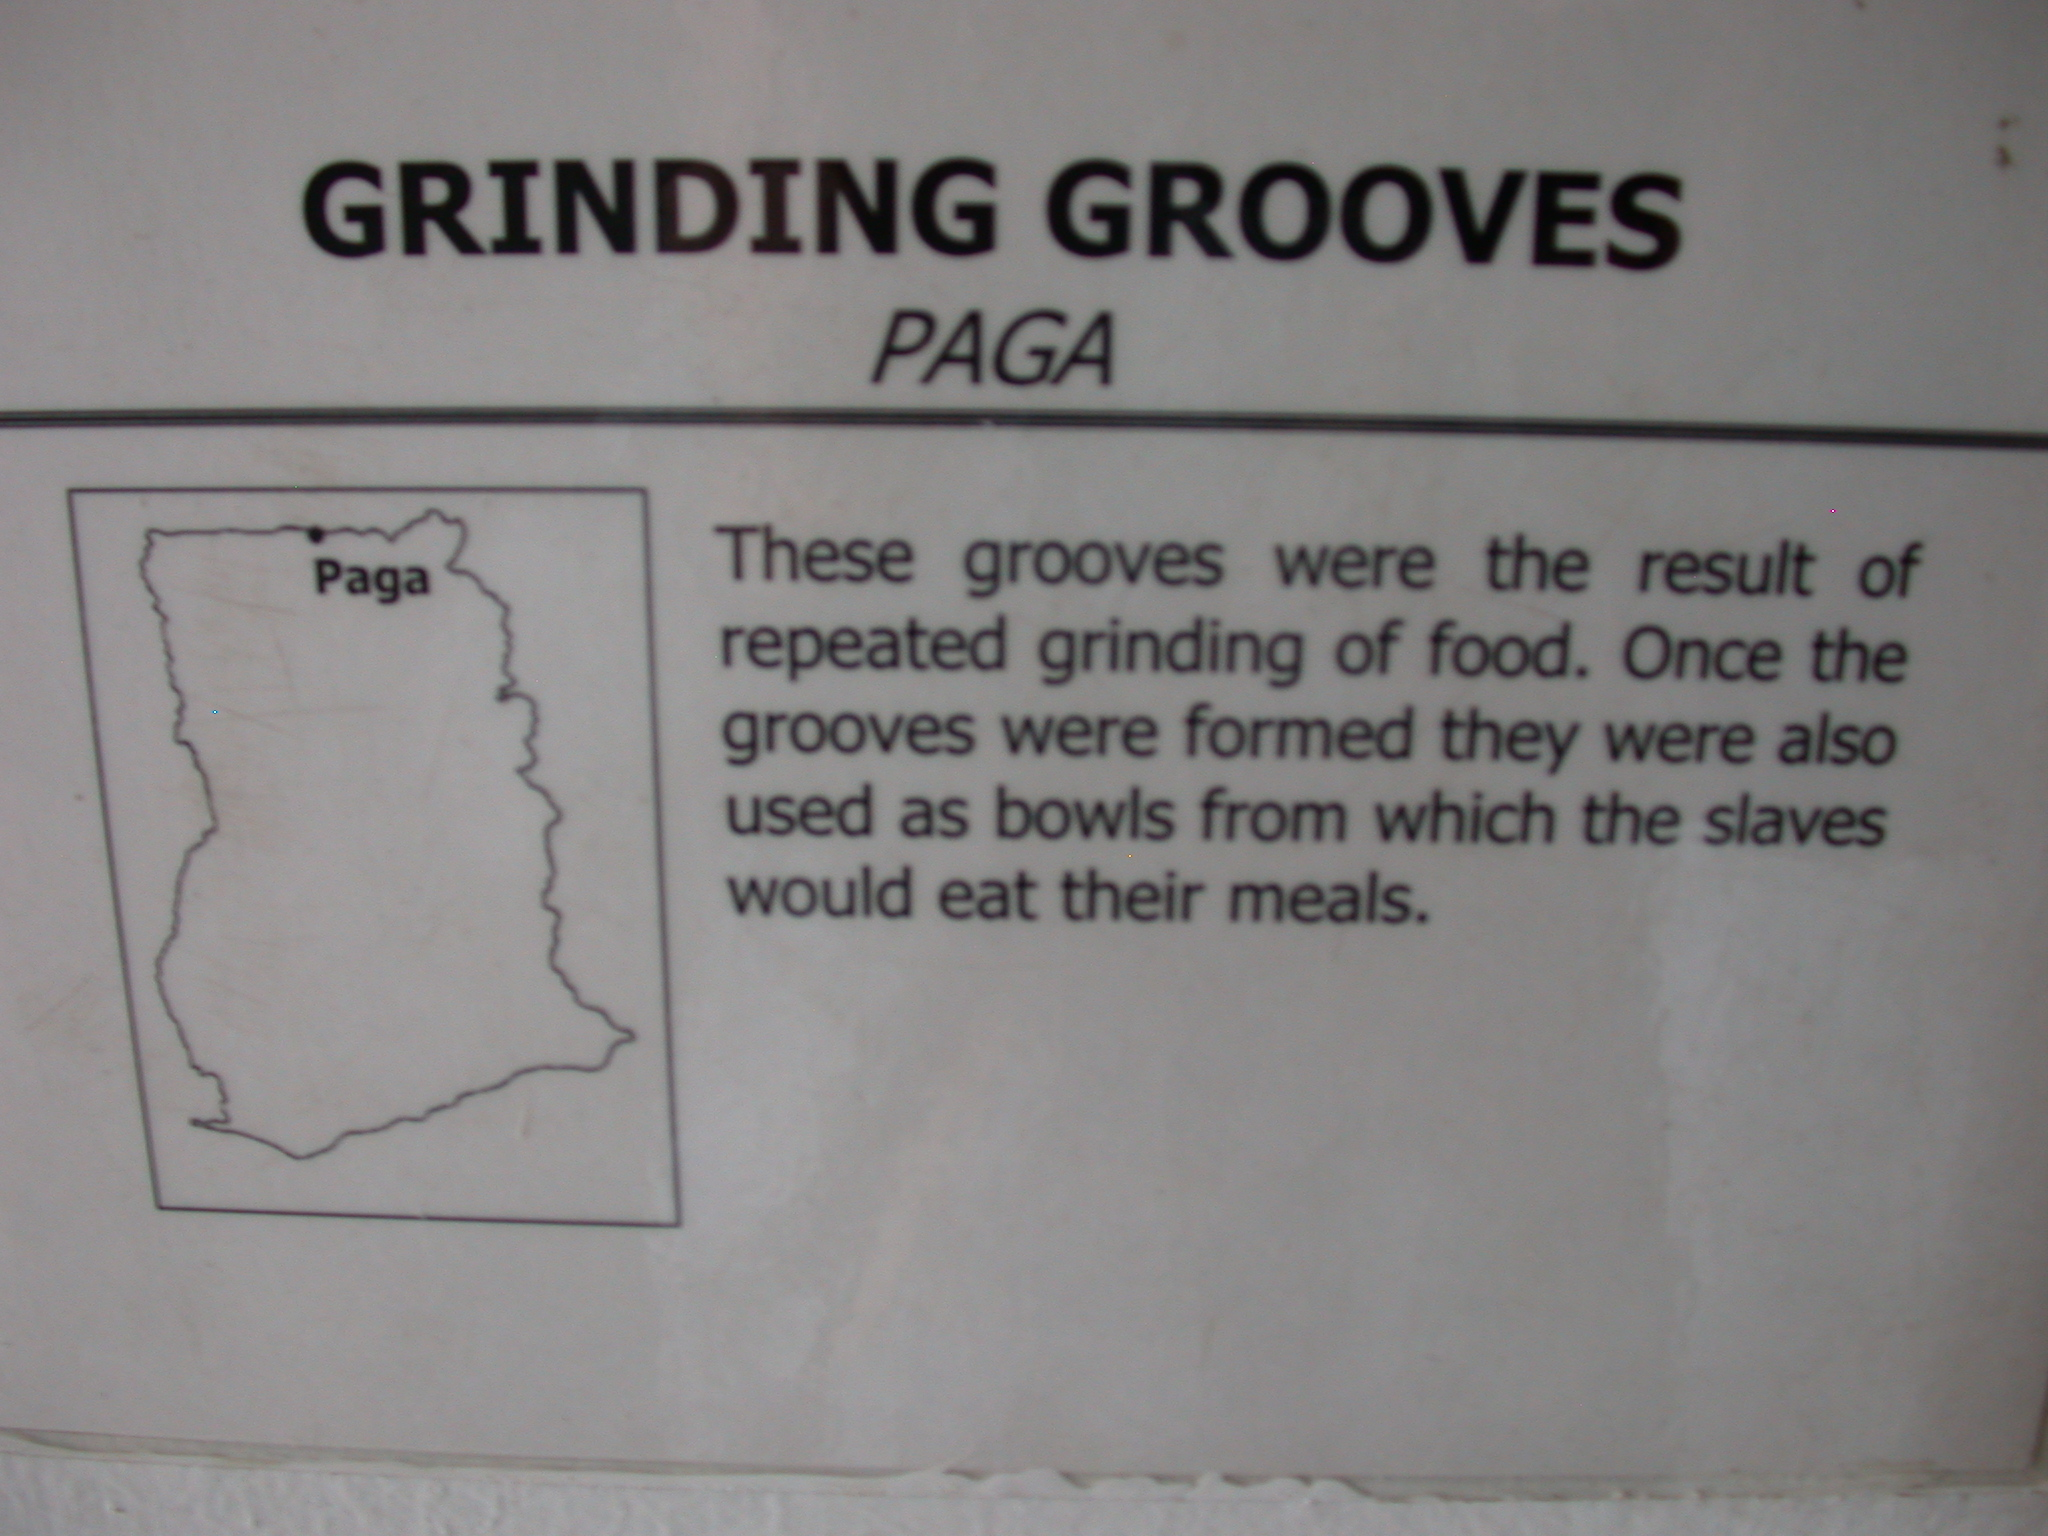 Label for Picture of Grinding Grooves and Slave Bowls, National Museum, Accra, Ghana